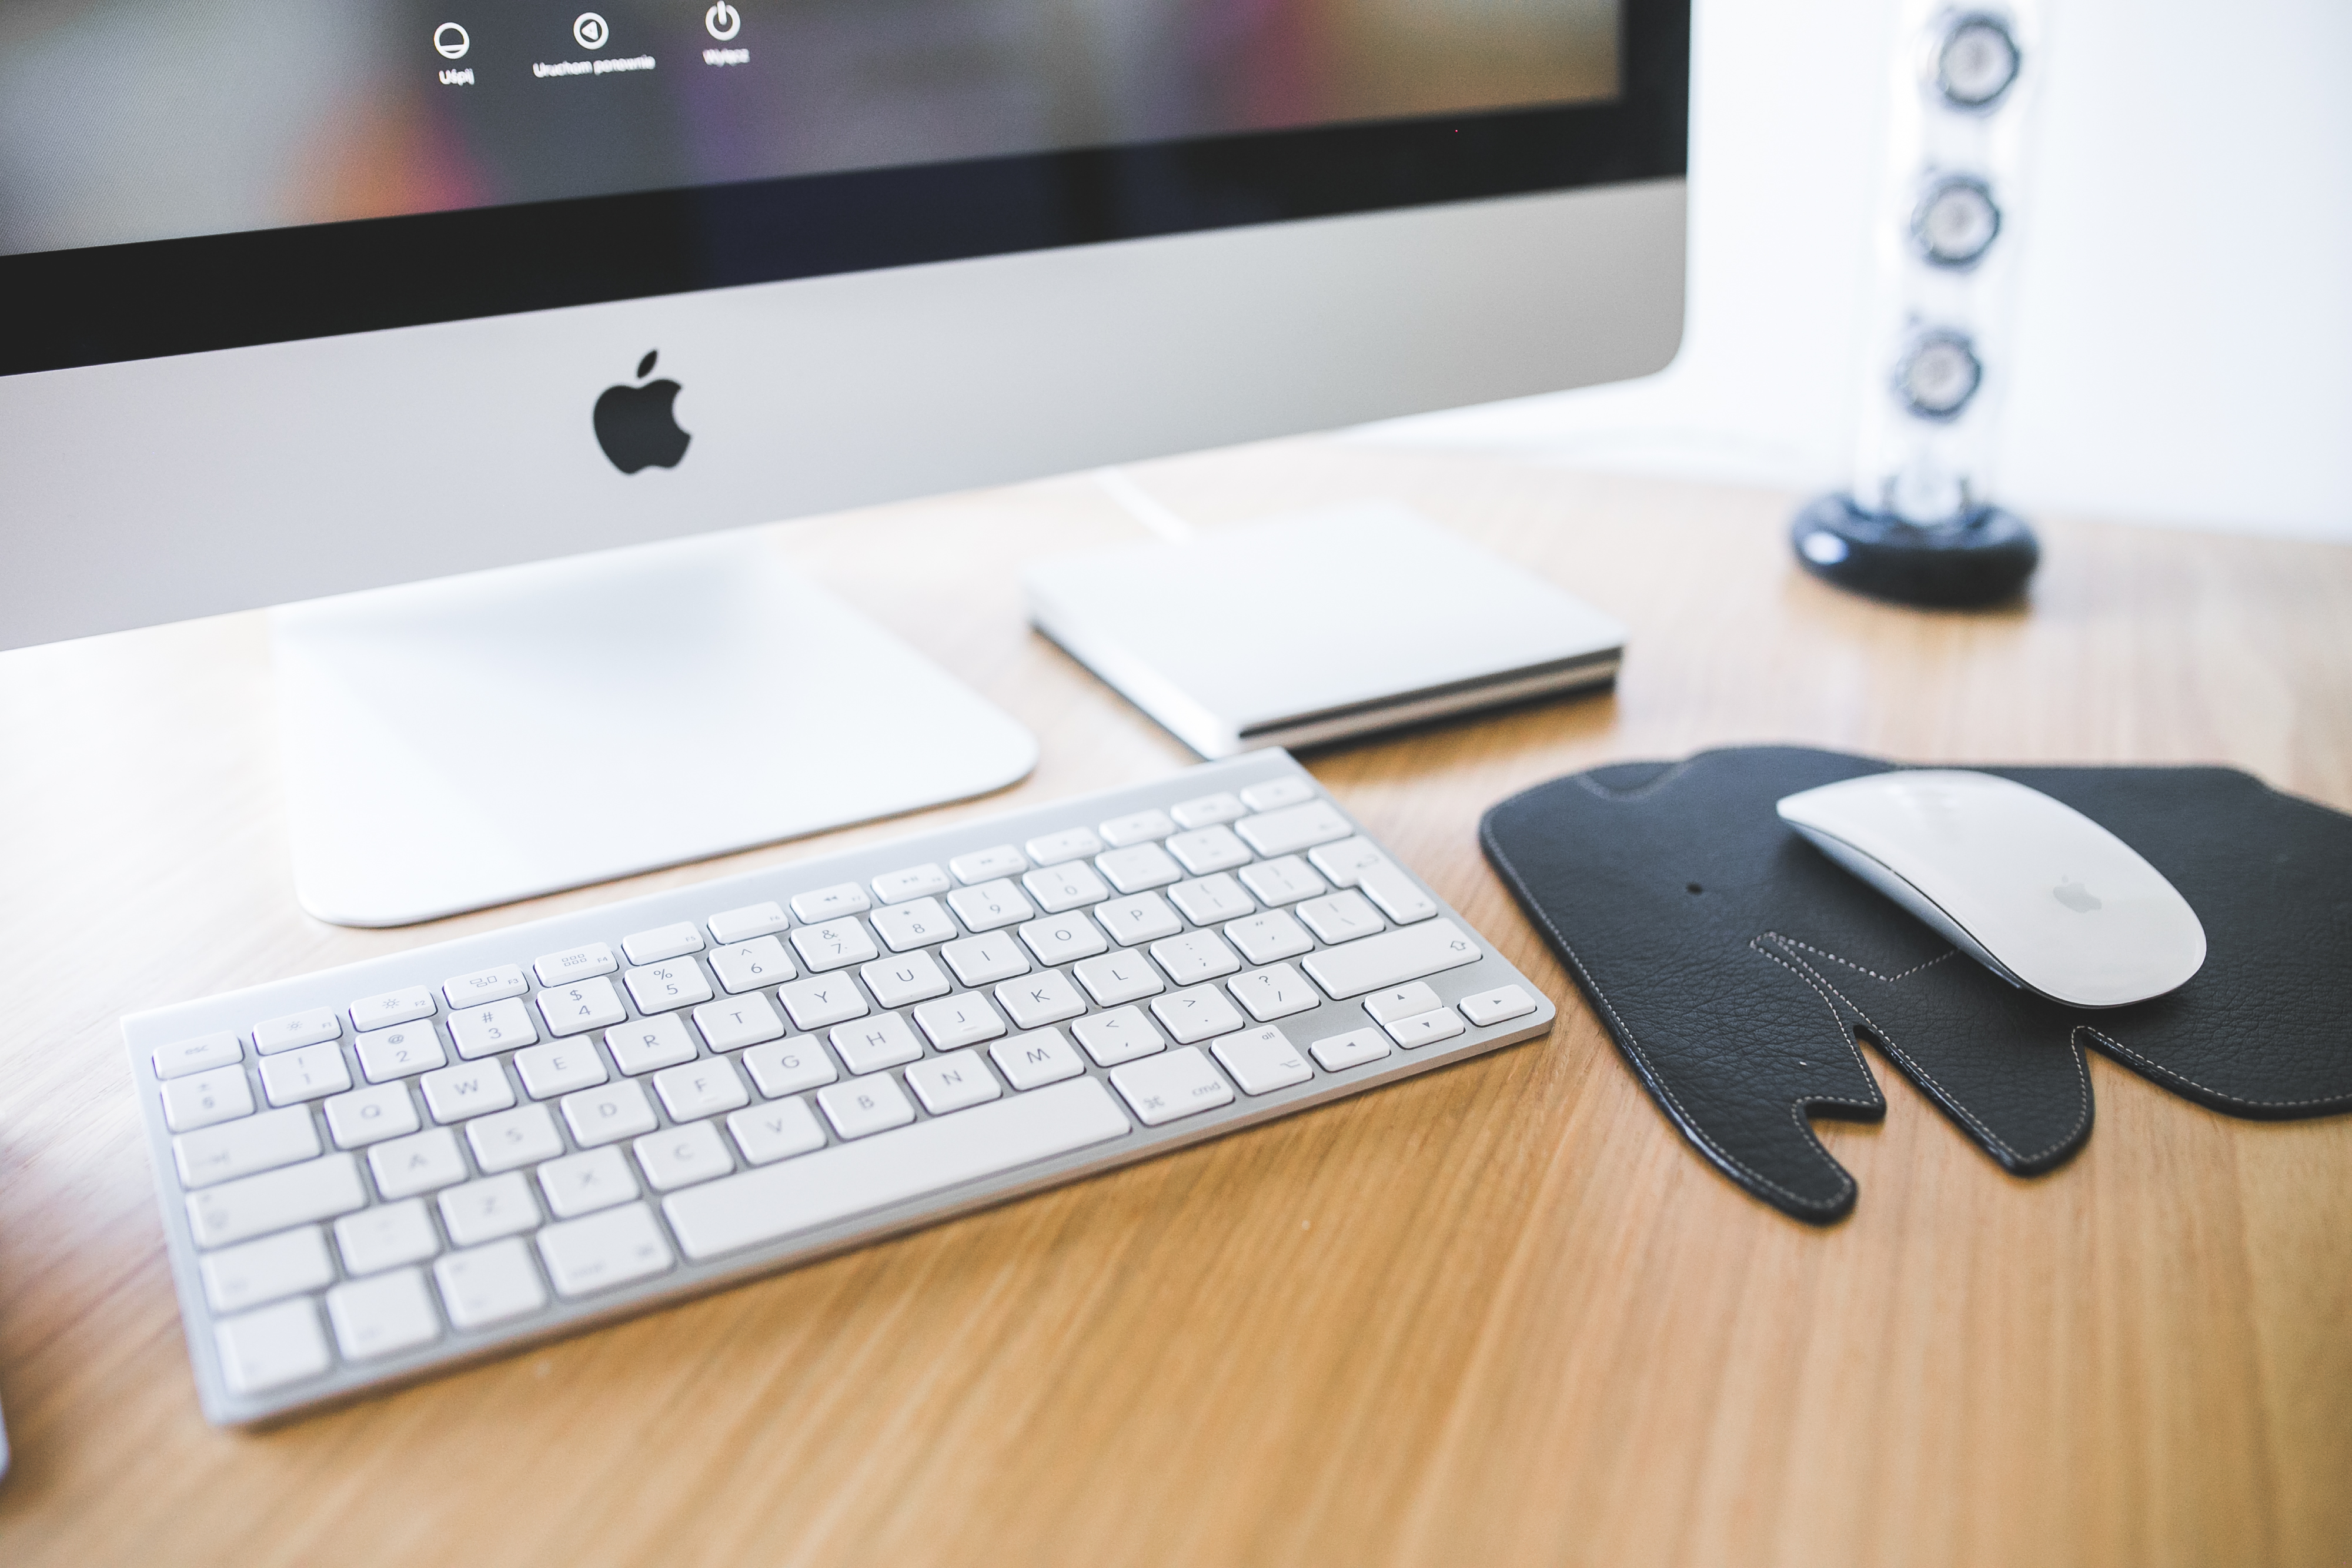 Desk Office Apple Imac Close Up Of Monitor Mouse And Keyboard Free Stock Photo